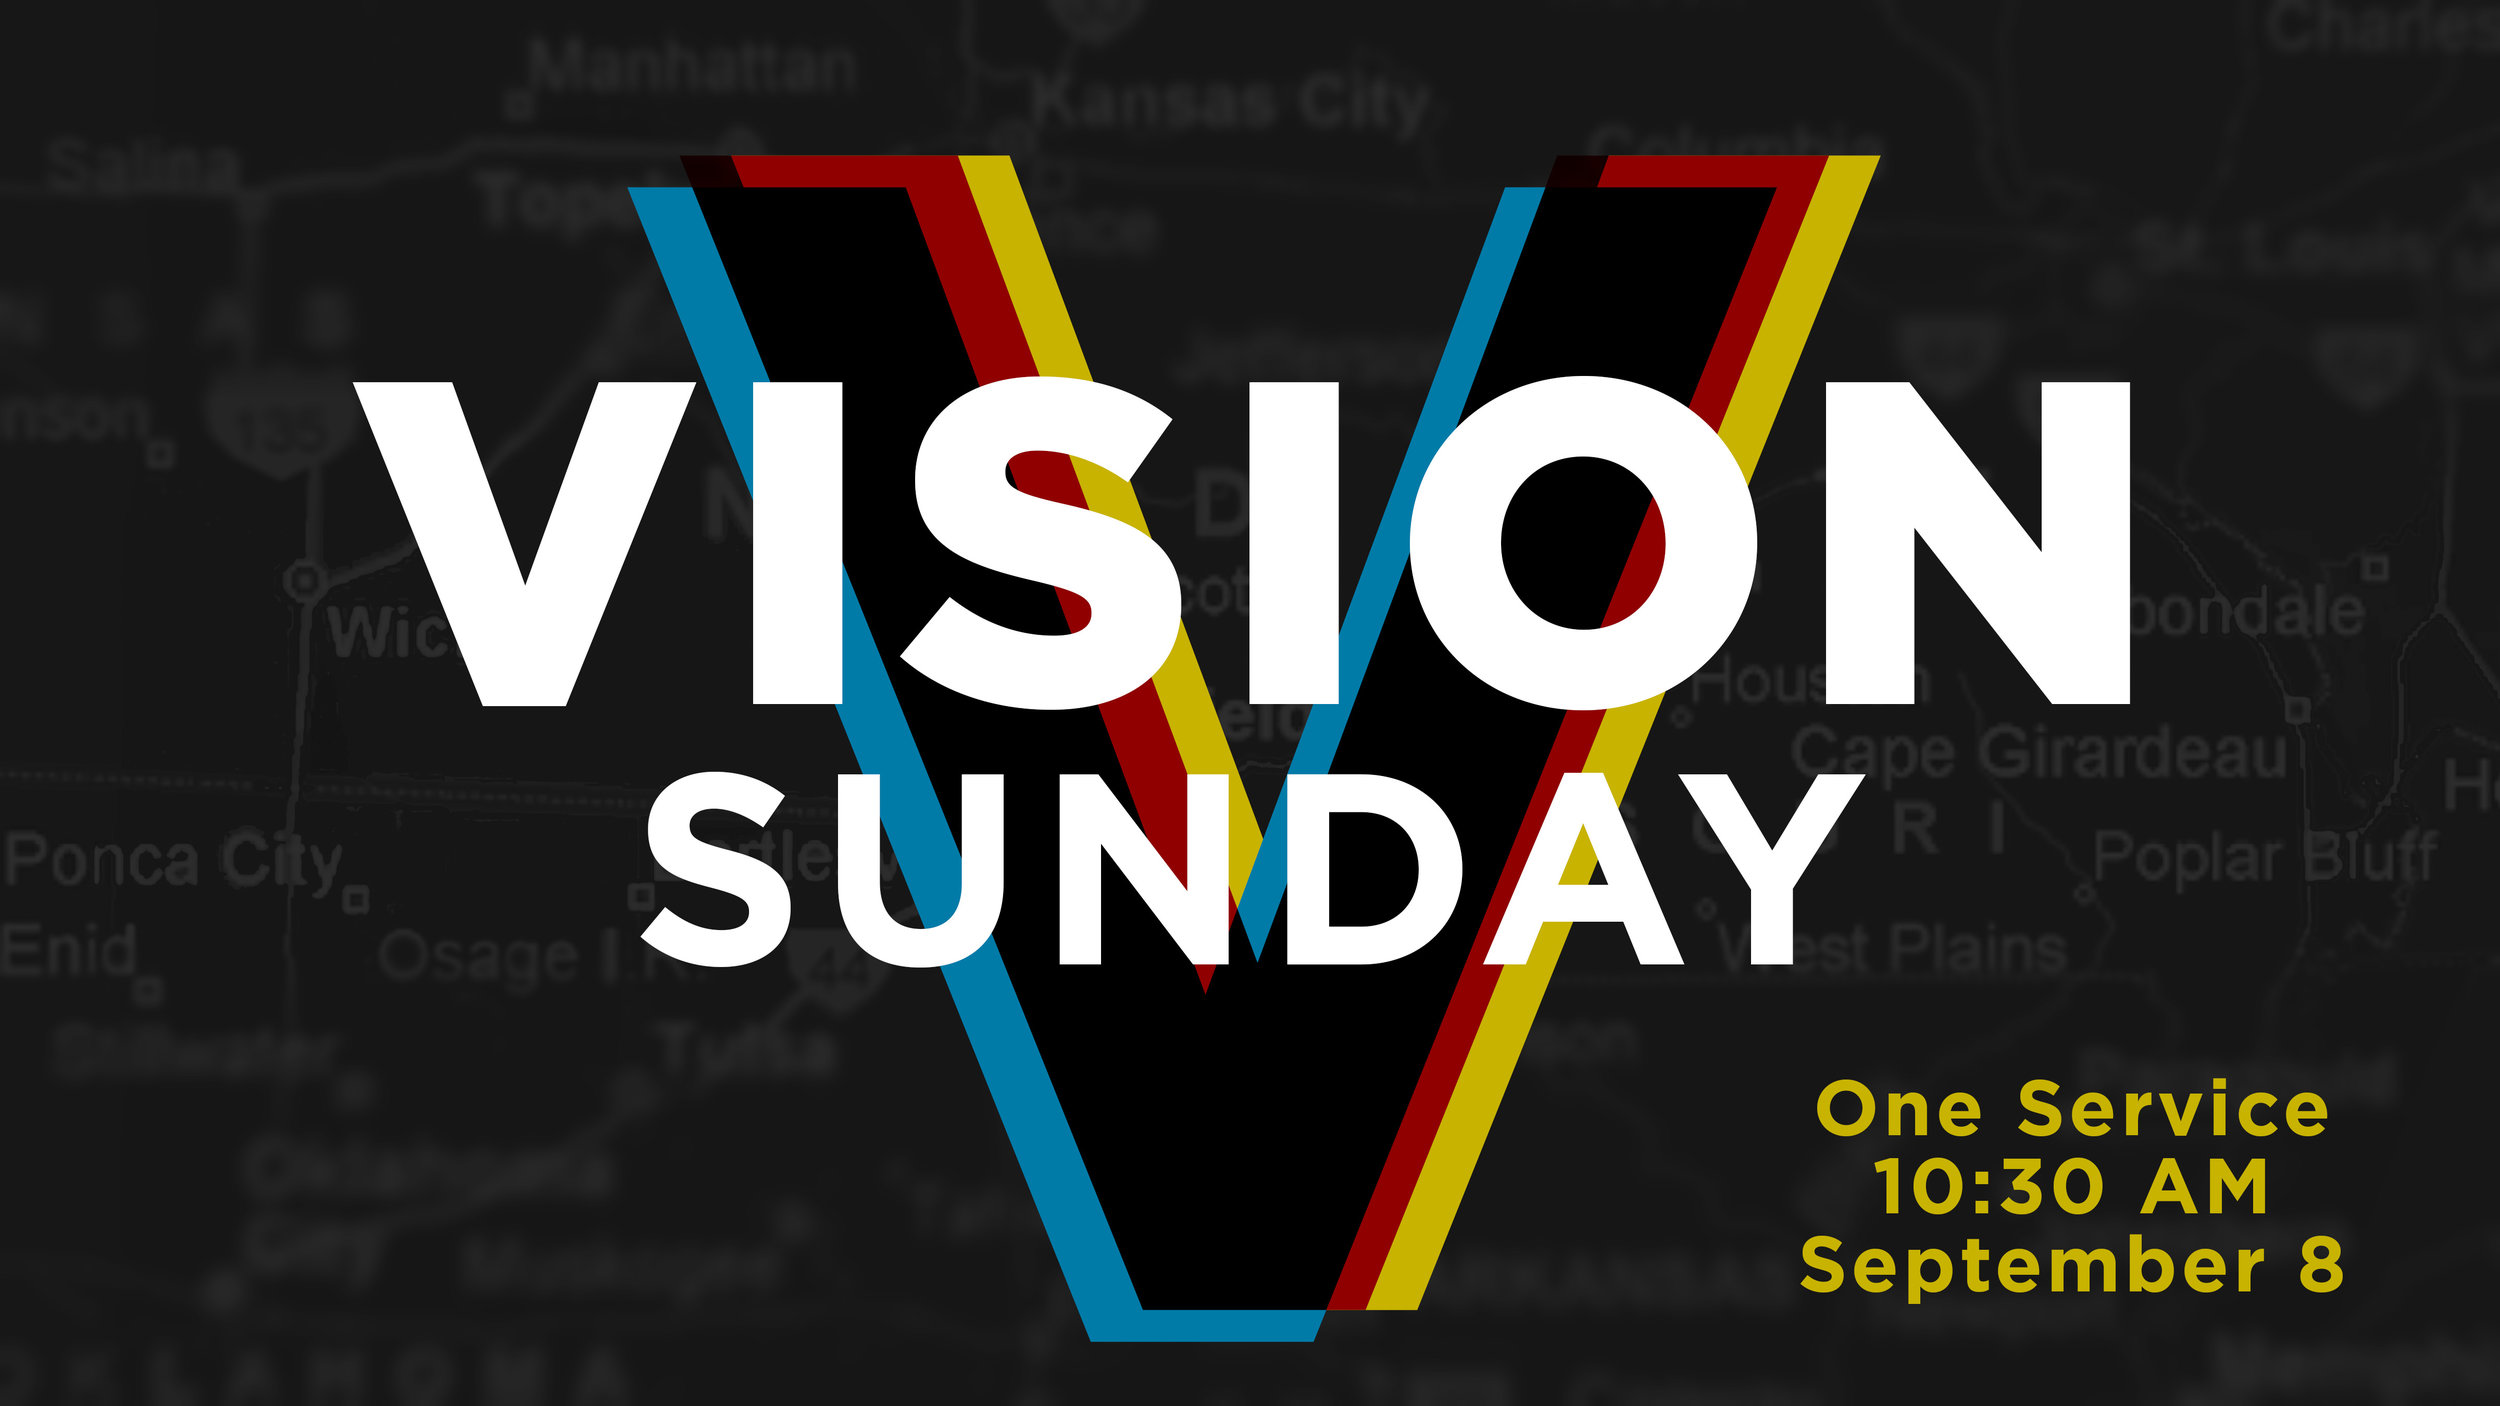 Vision Sunday Graphic With Date and Time.jpg